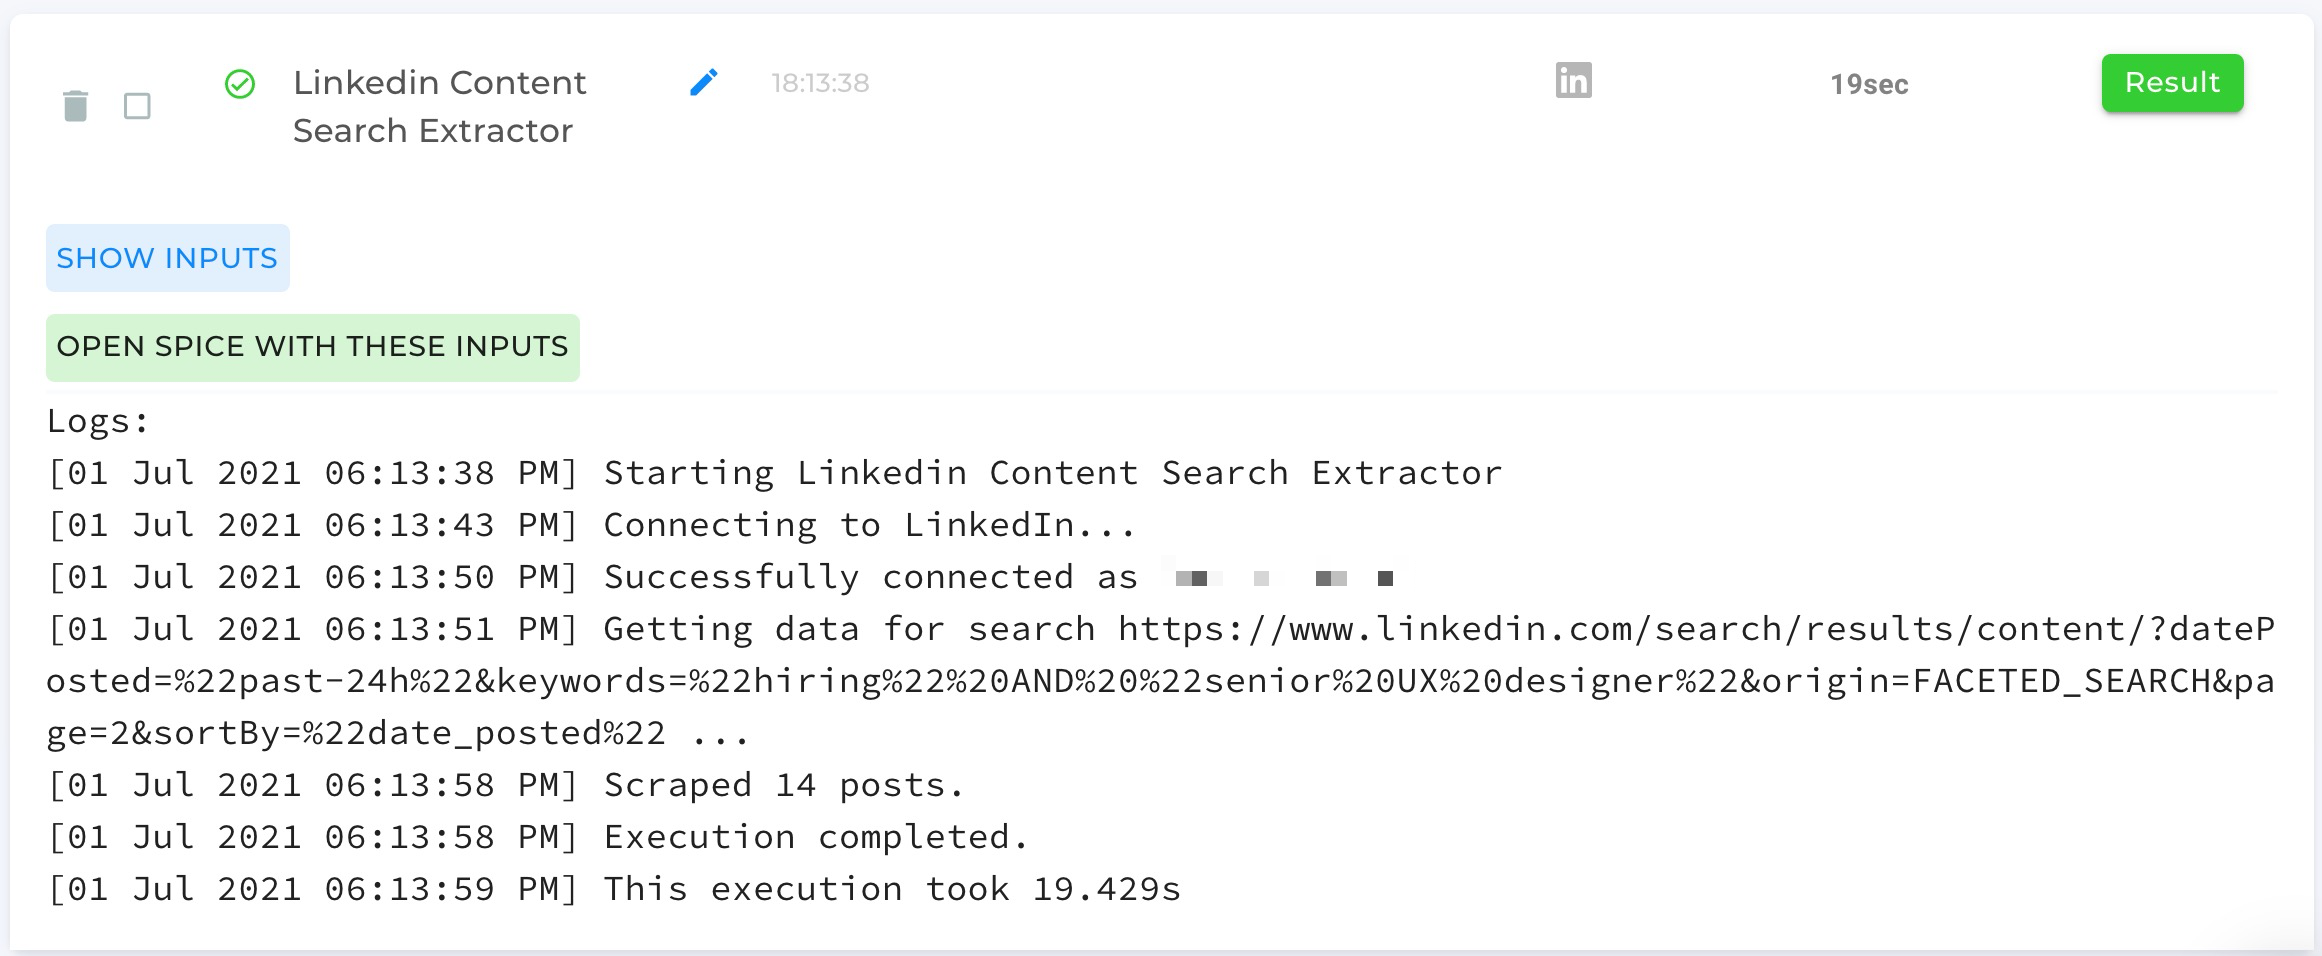 LinkedIn Content Search Extractor — automation completed